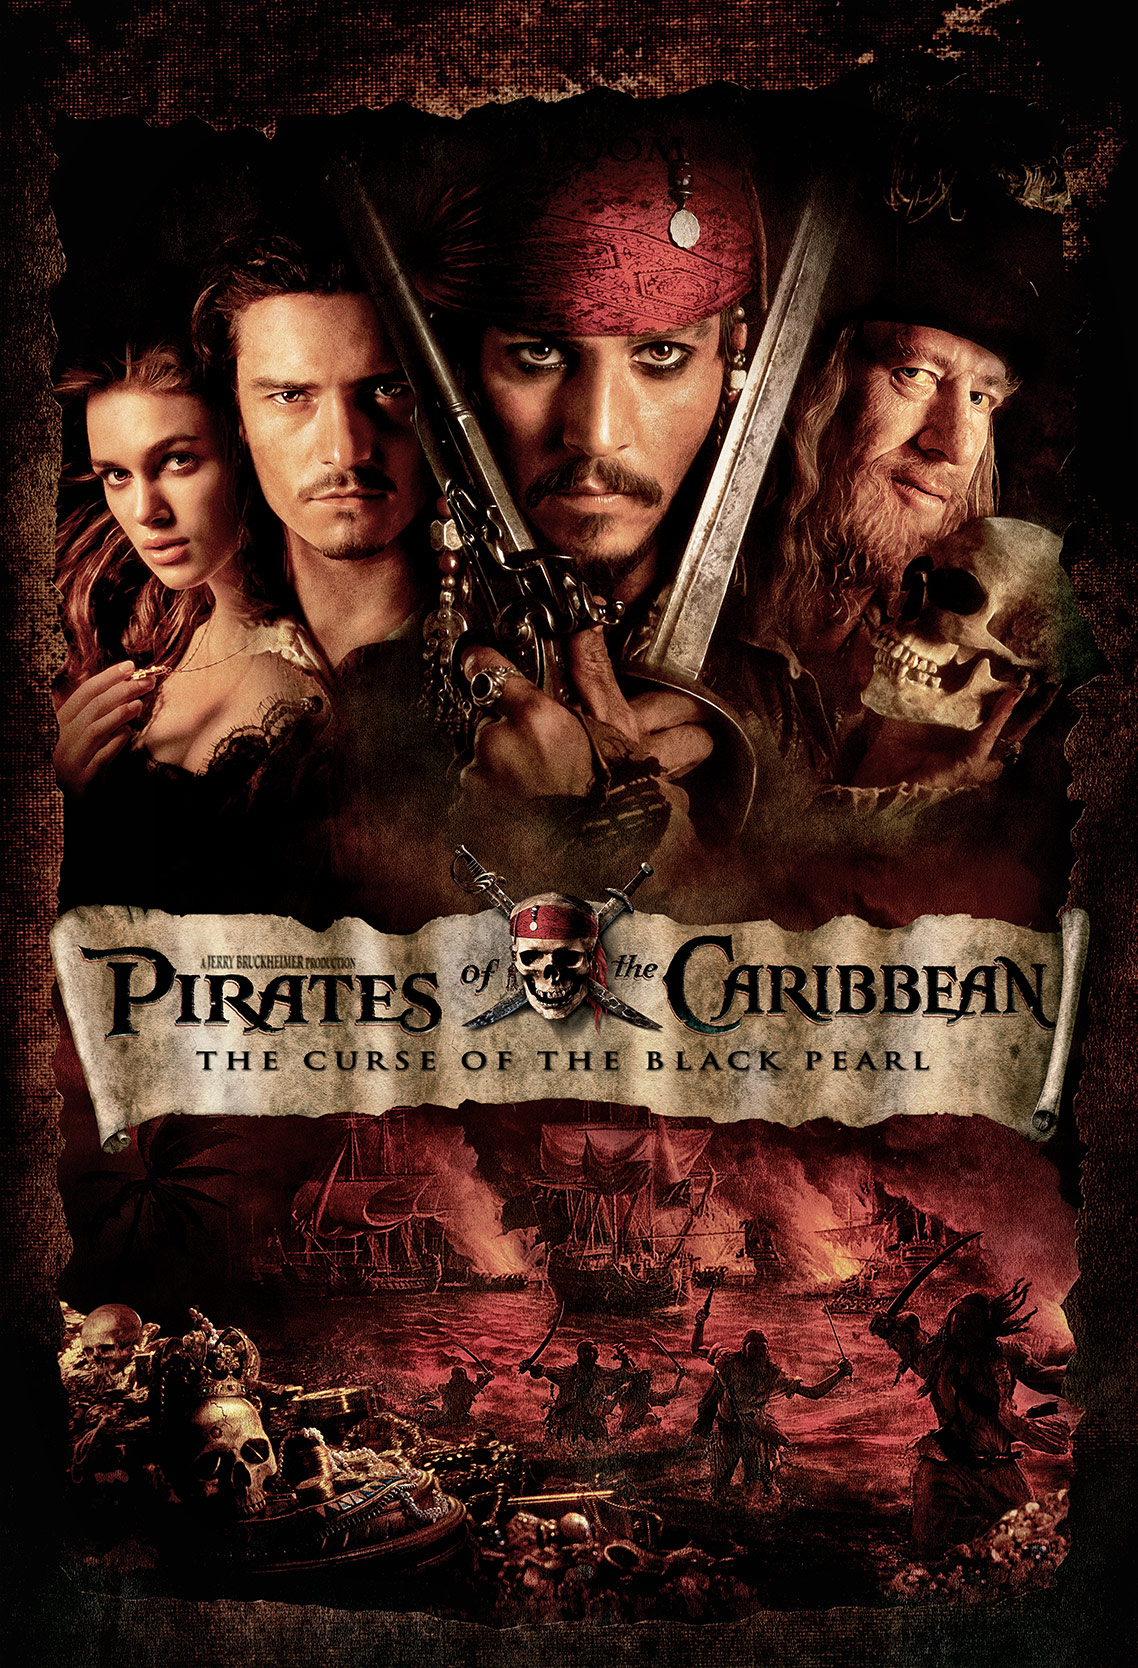 PIRATES OF THE CARIBBEAN • THE CURSE OF THE BLACK PEARL • Poster Art